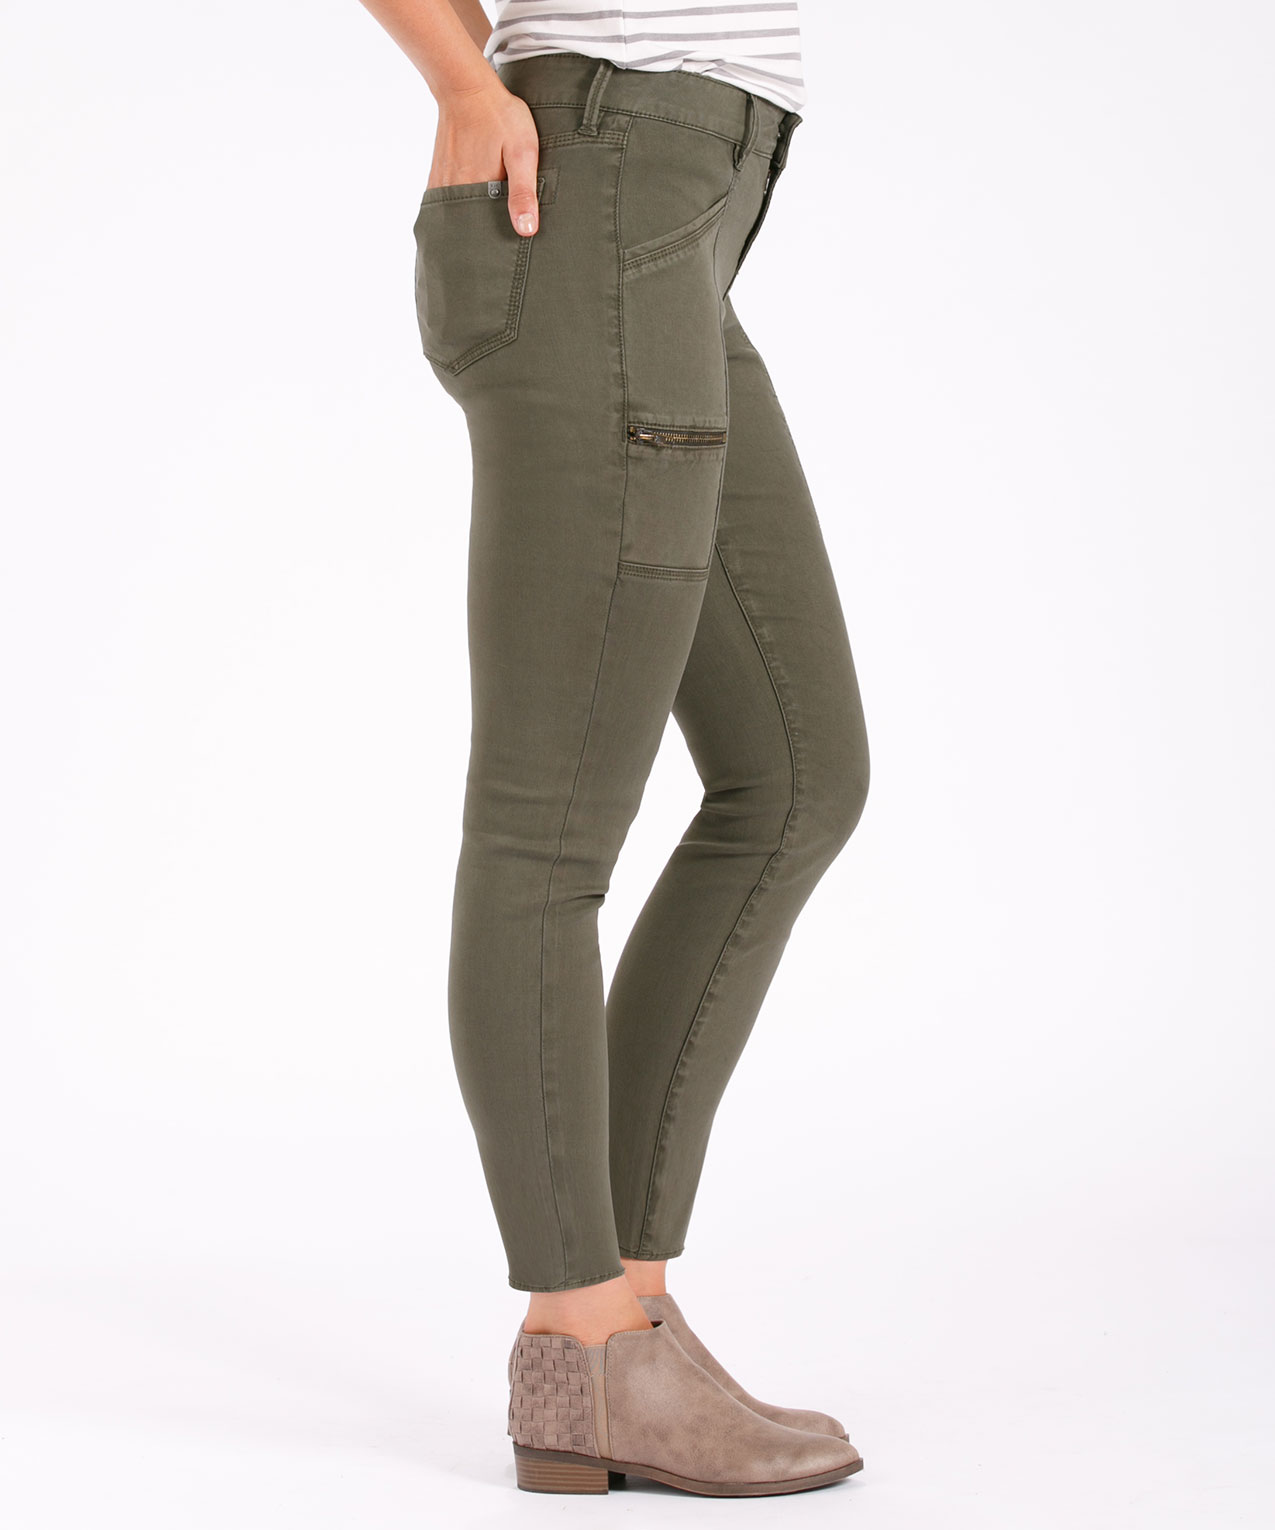 6fbd6785 Silver Jeans Co. Aiko Slim Cargo, Olive, hi-res ...